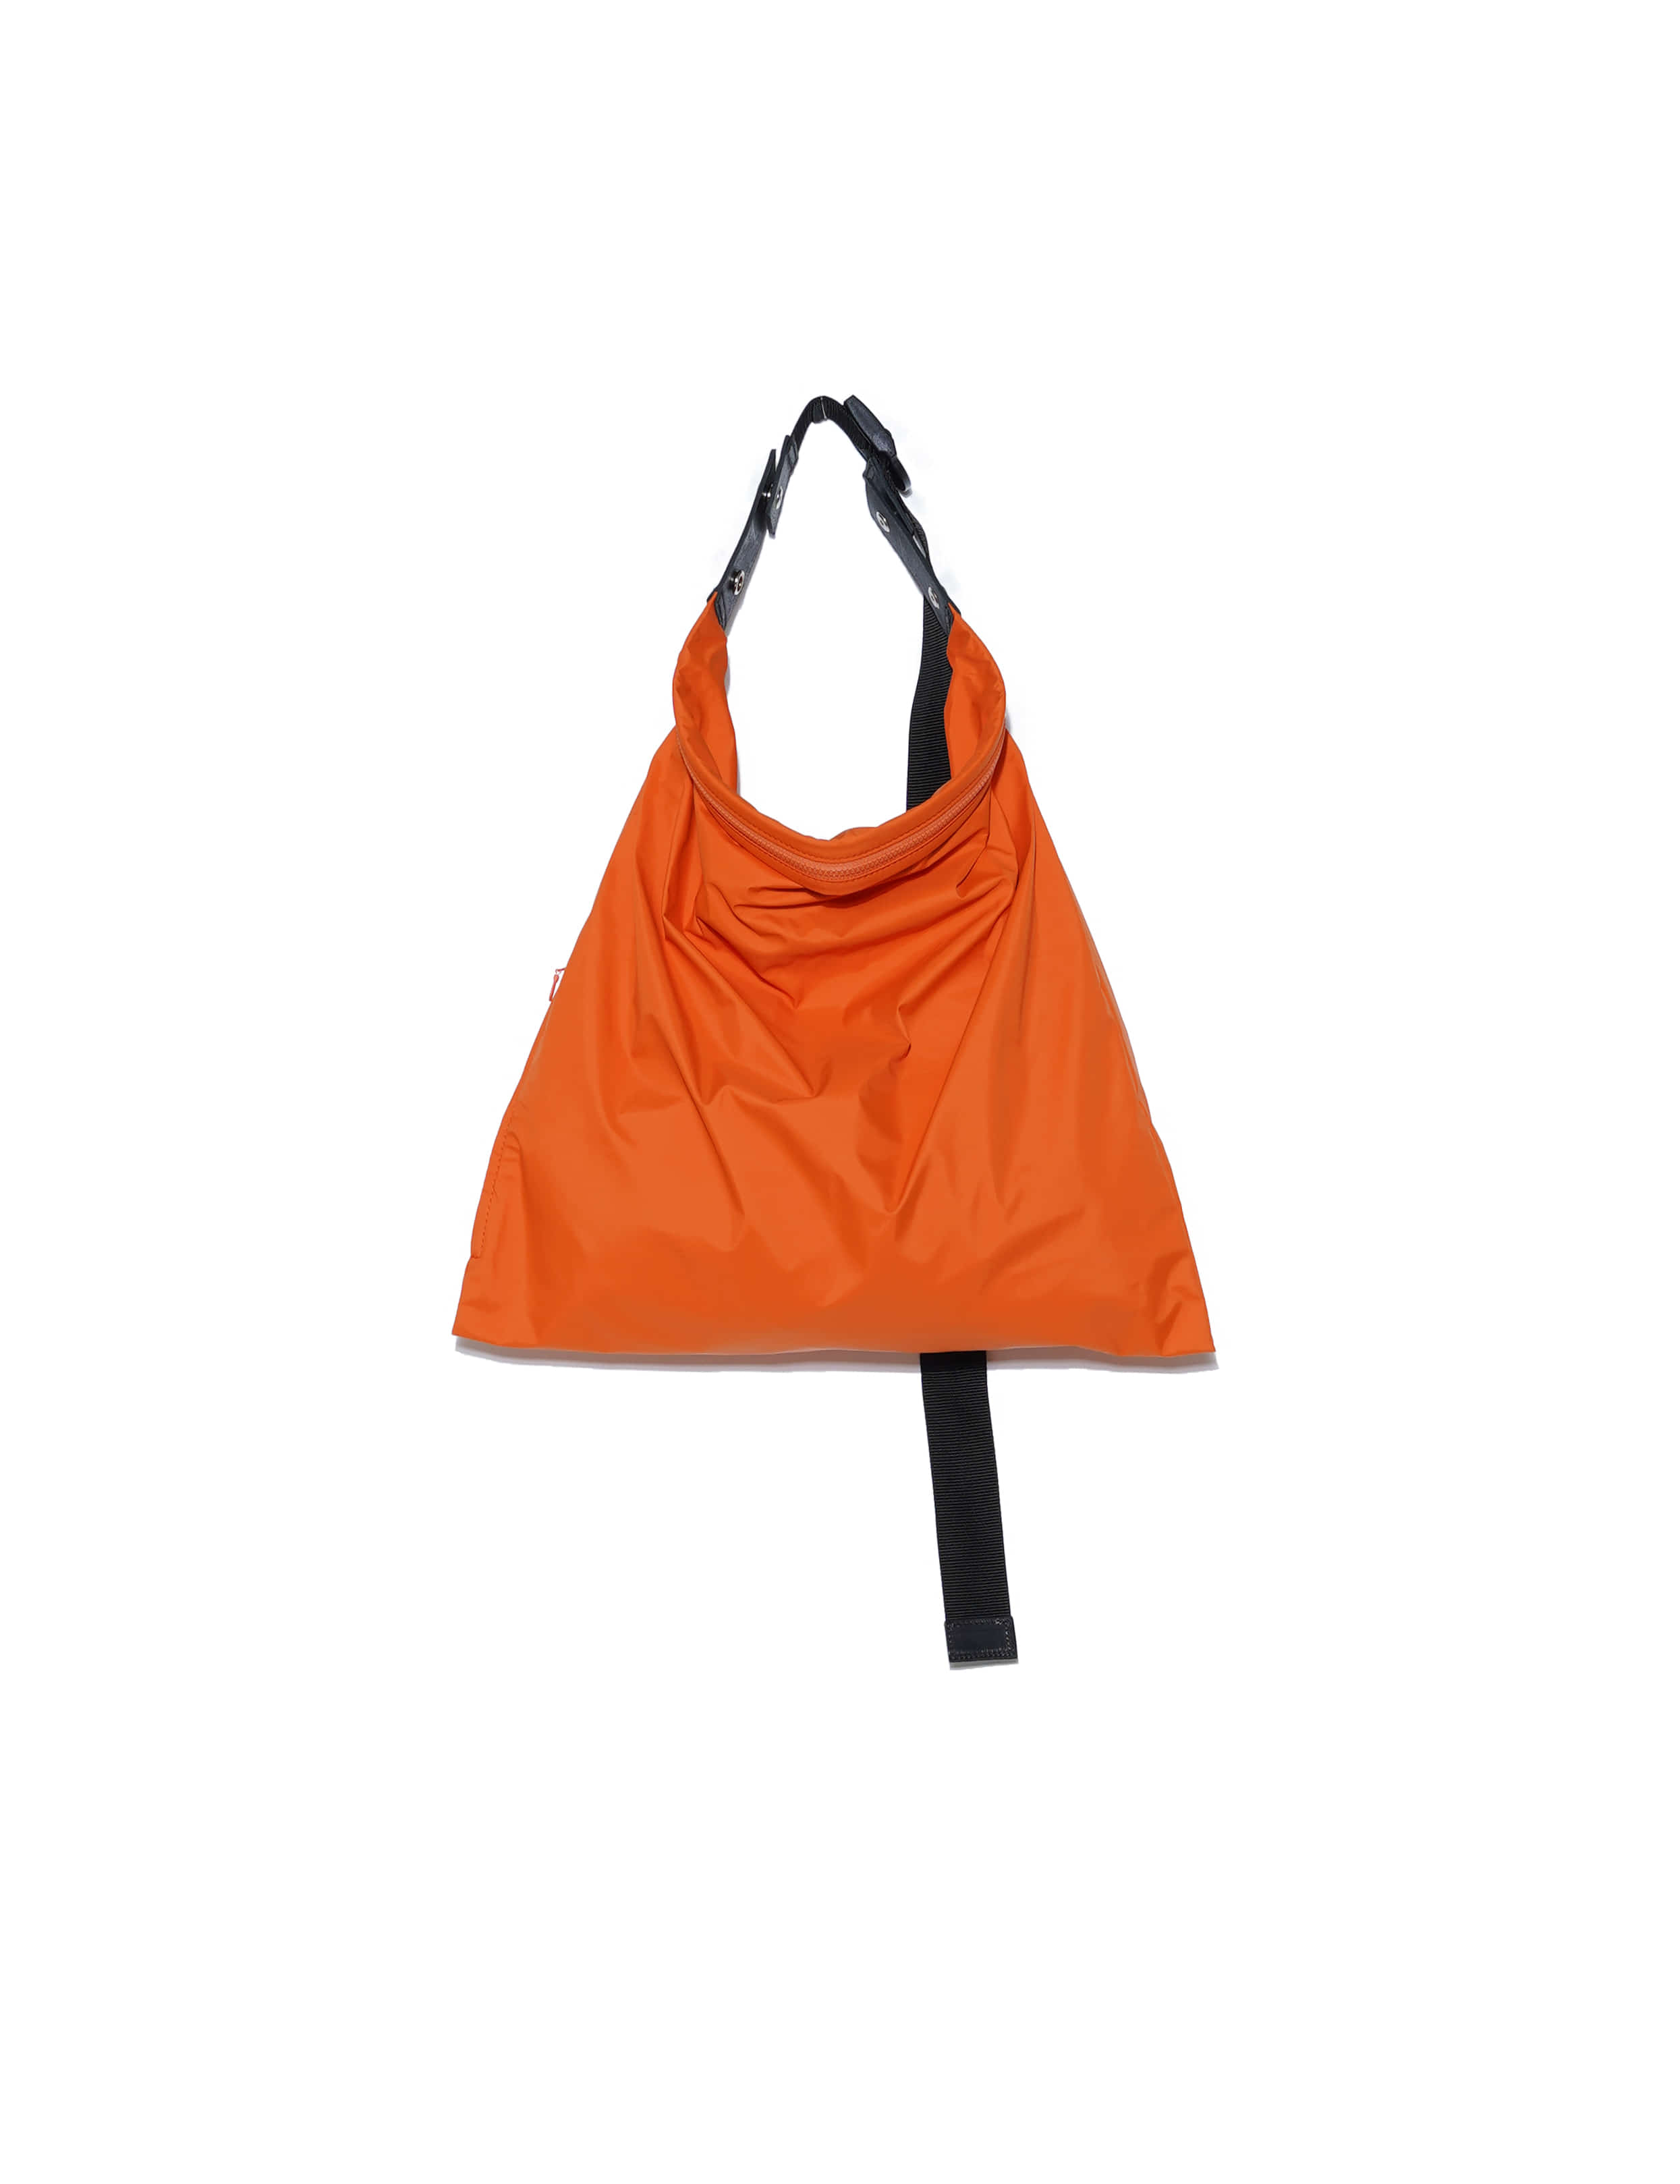 WRAP BAG - S (ORANGE)